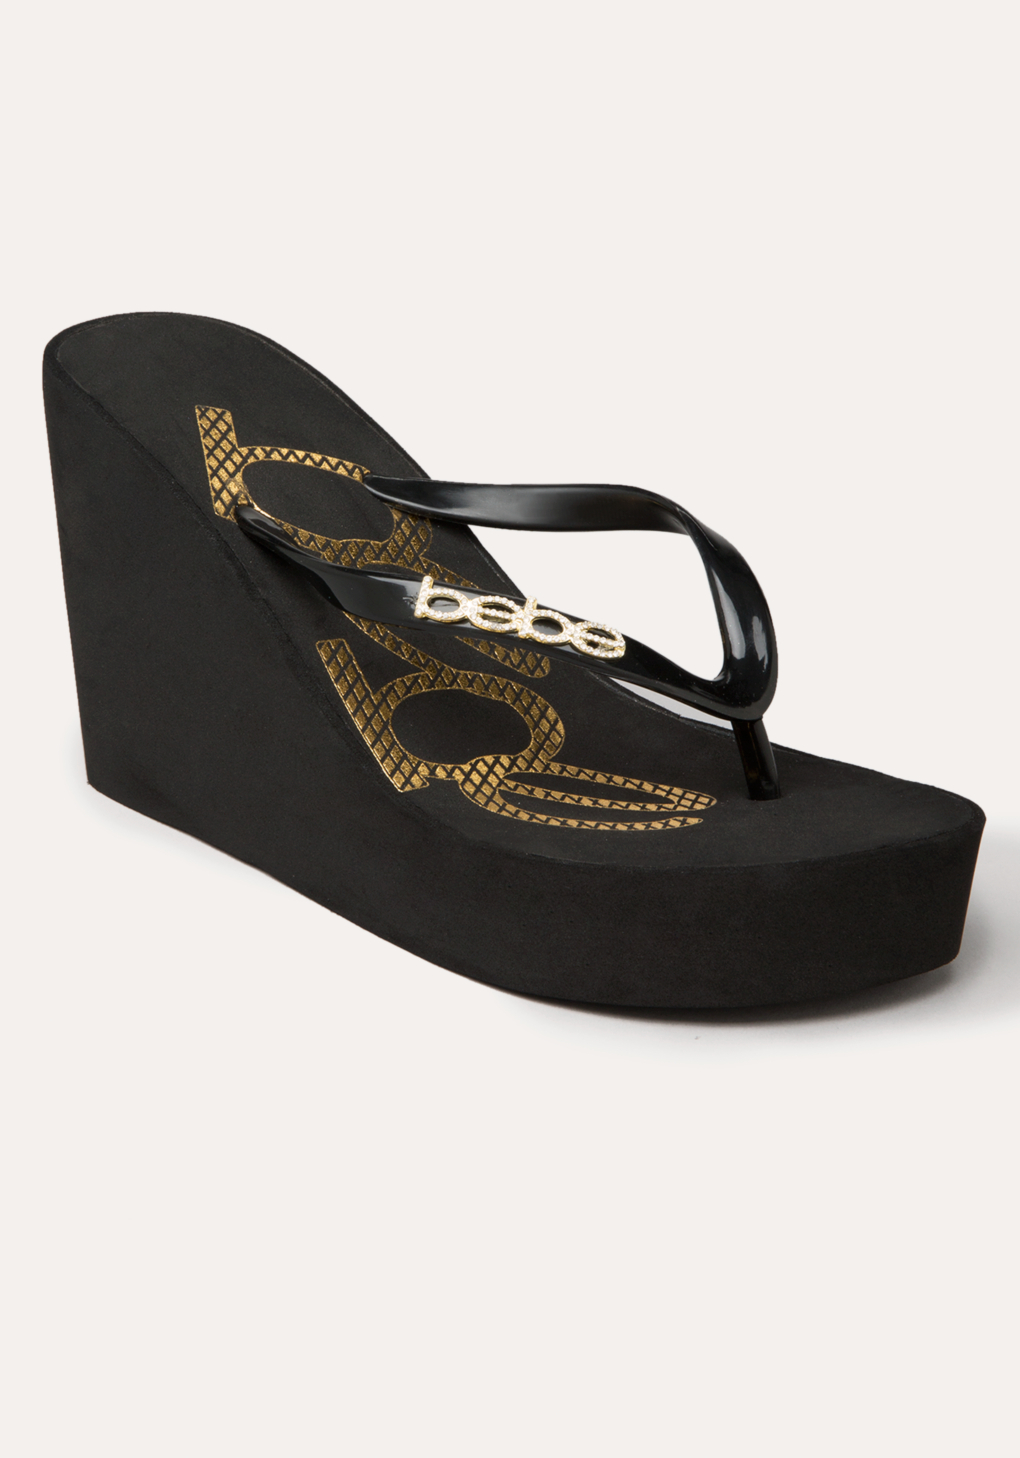 Bebe Black And Gold Shoes